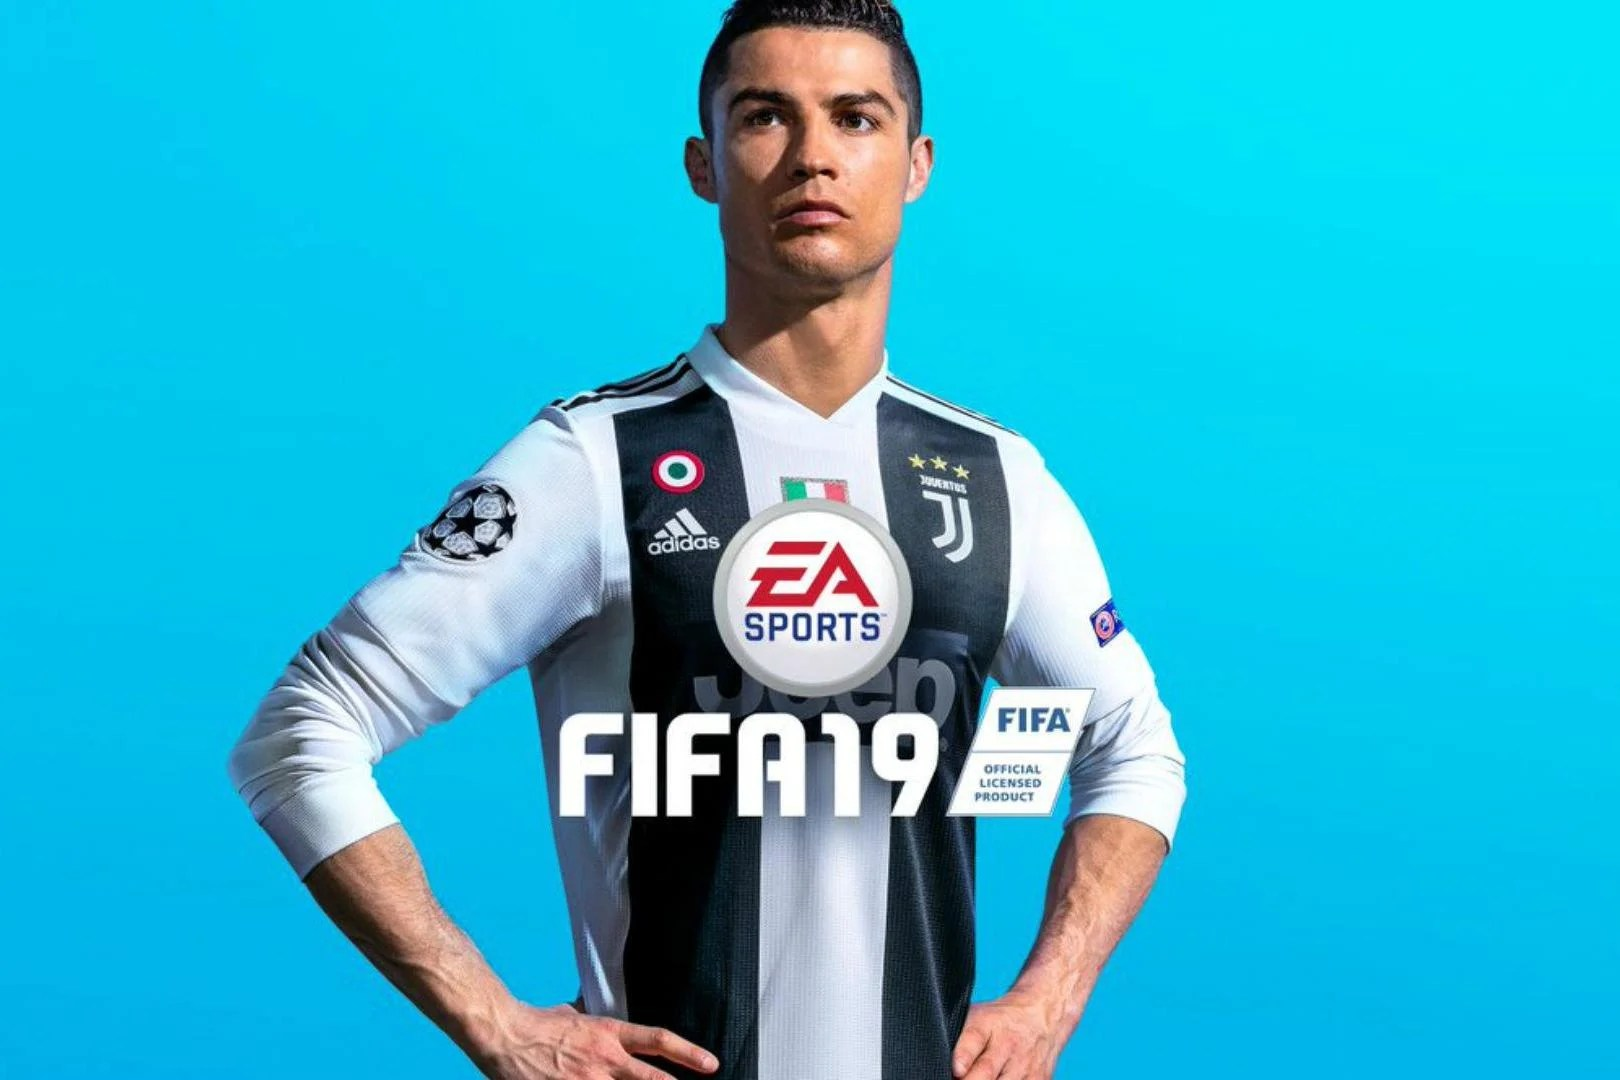 FIFA 19 Demo Release Date On PS4 And Xbox One How To